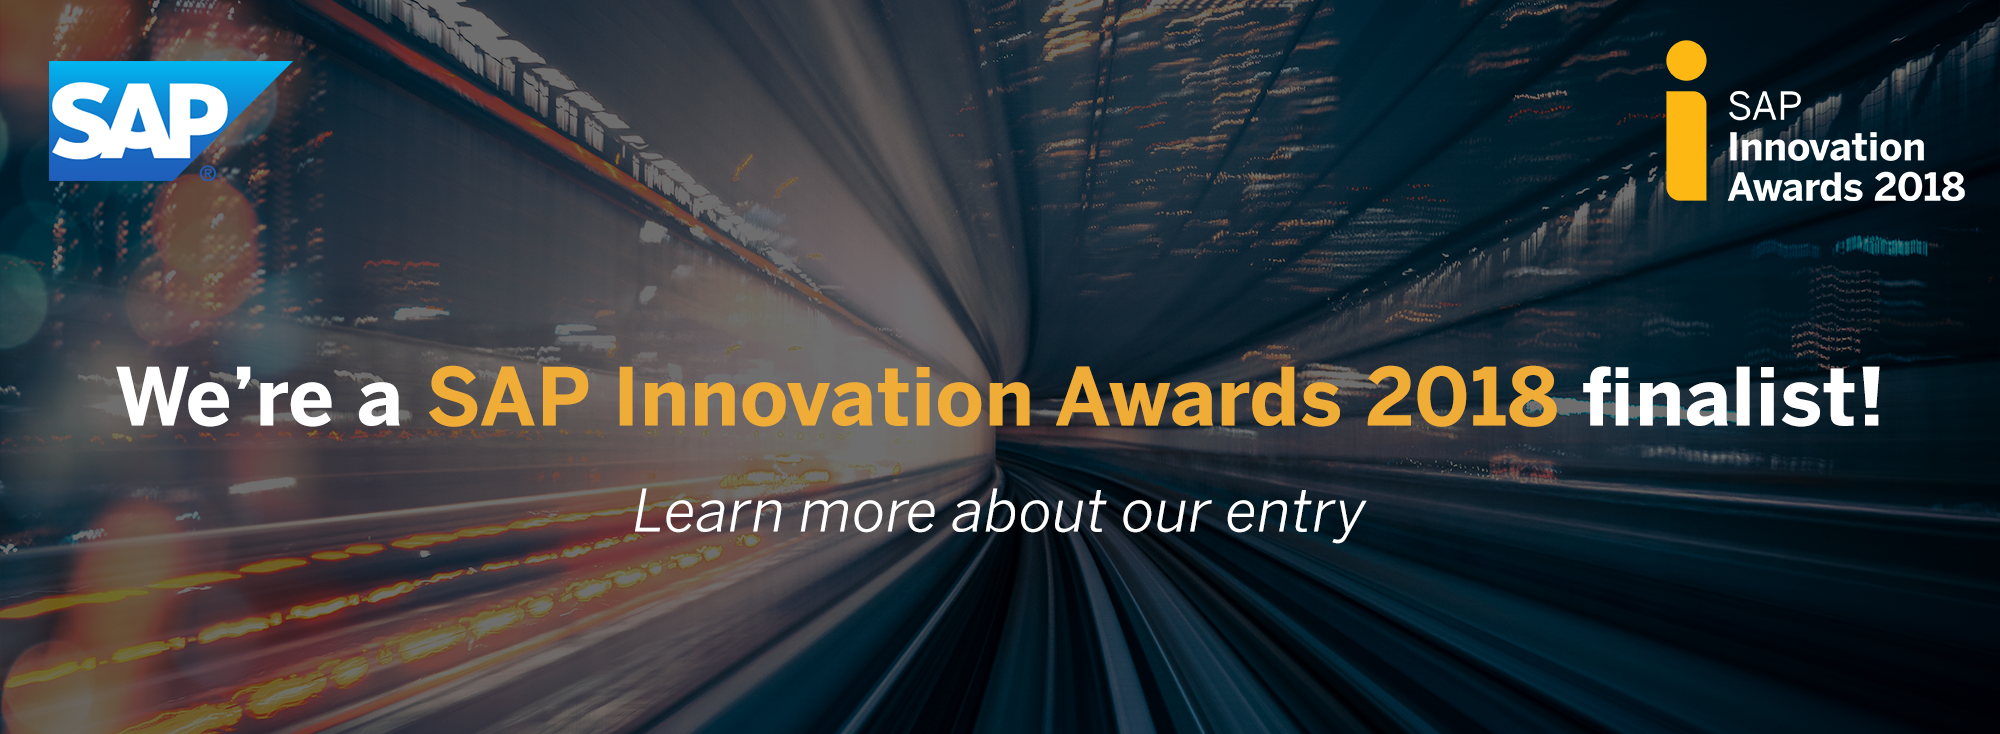 SAPIA2018 Website Banner PNG - Sonnentracht im Finale bei den SAP Innovation Awards